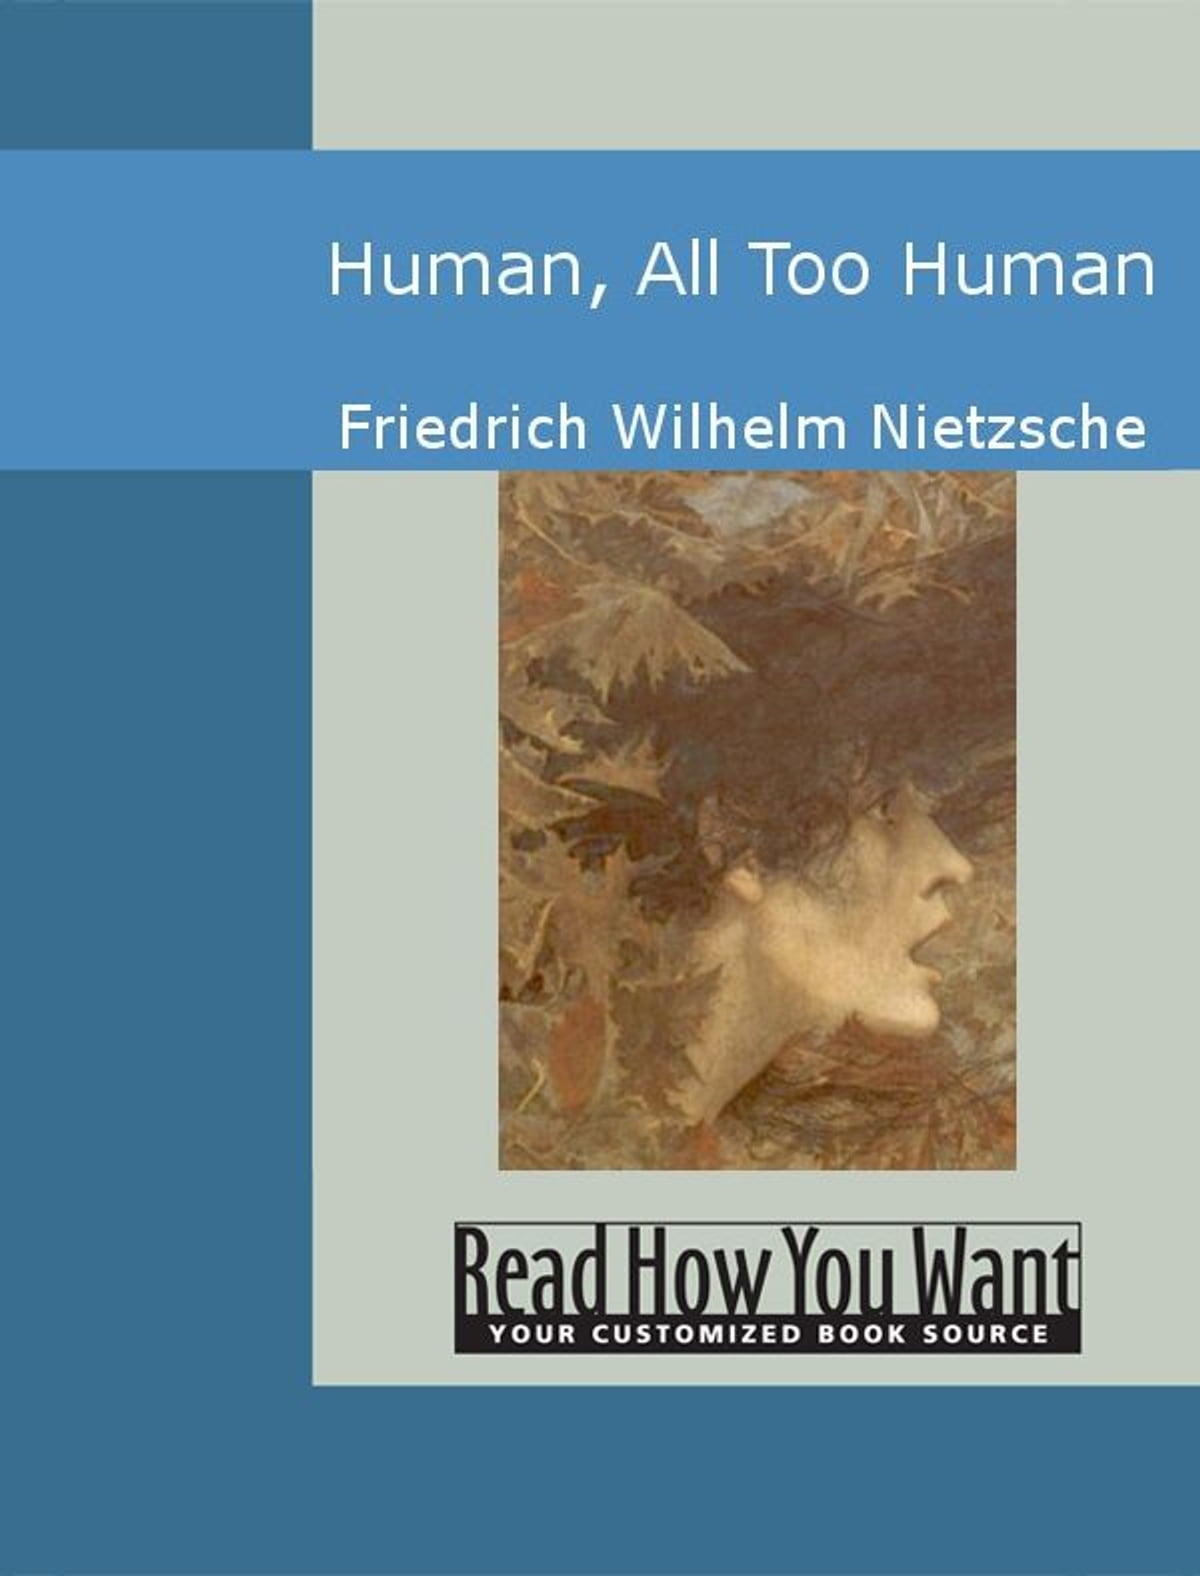 Human All Too Human Ebook Di Friedrich Wilhelm Nietzsche